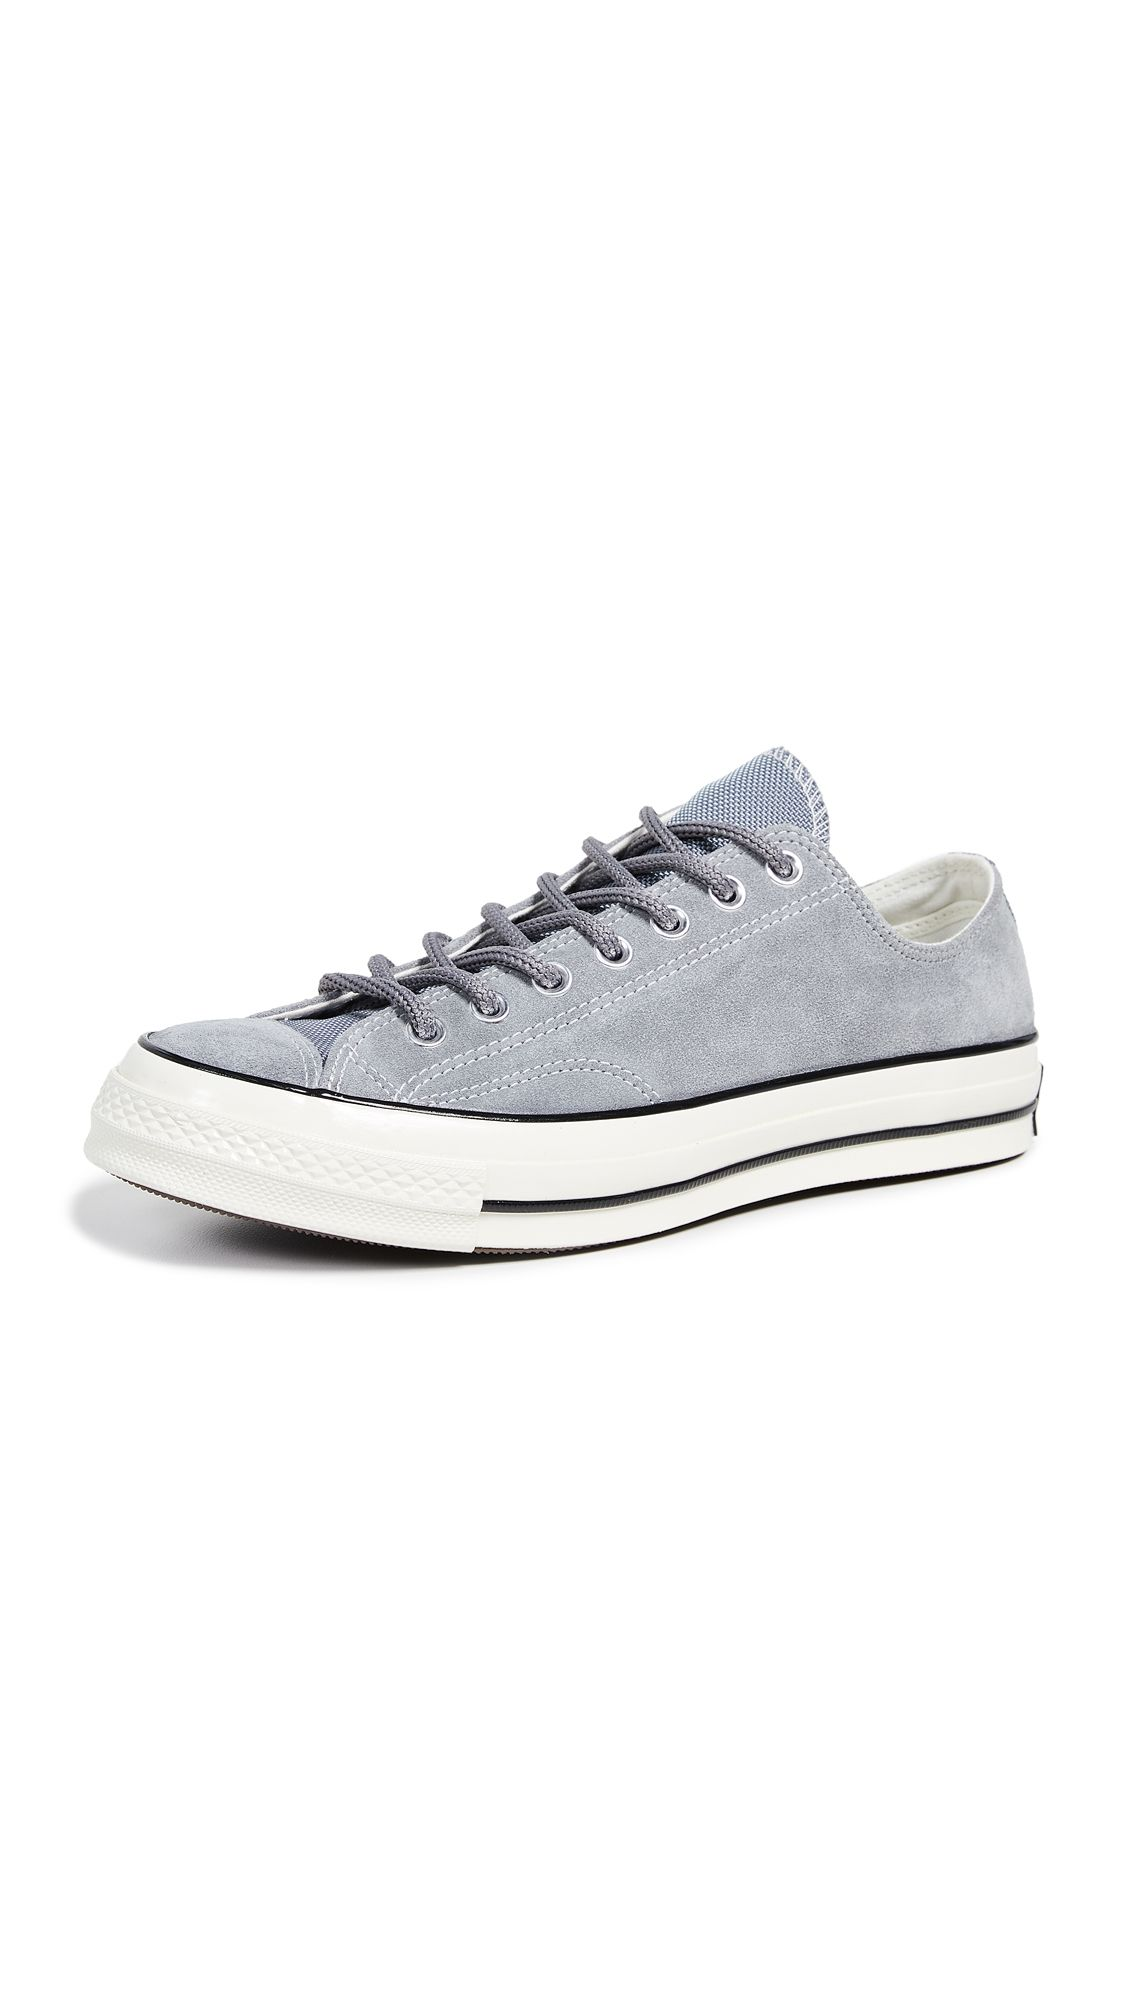 c28945fb5007 CONVERSE CHUCK 70 BASE CAMP SUEDE LOW TOP SNEAKERS.  converse  shoes ...